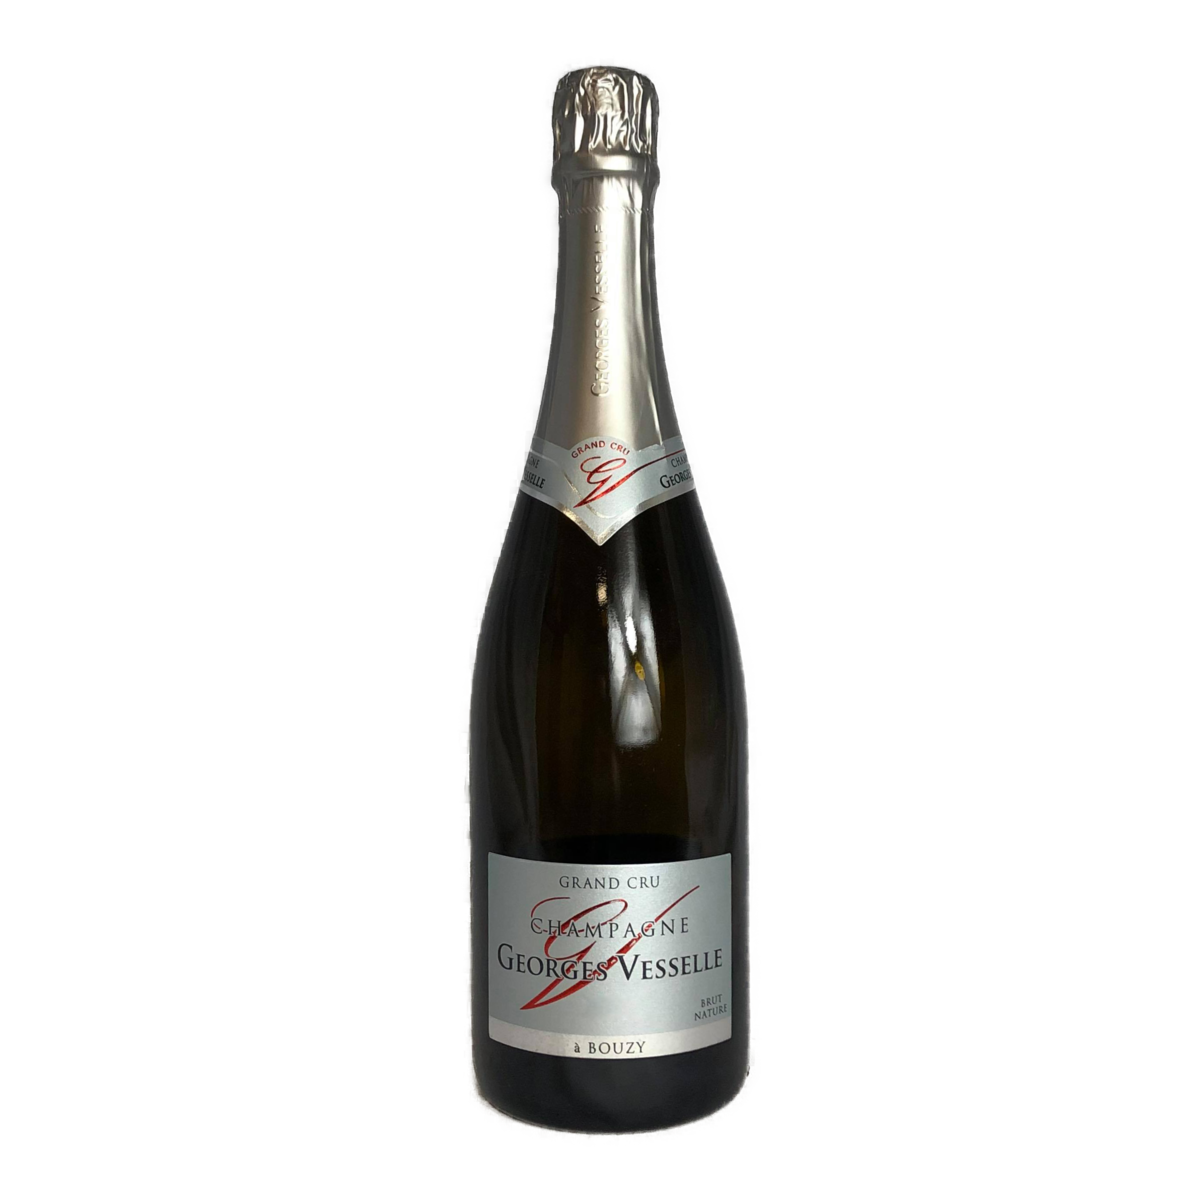 Champagne Georges Vesselle Brut Nature 0